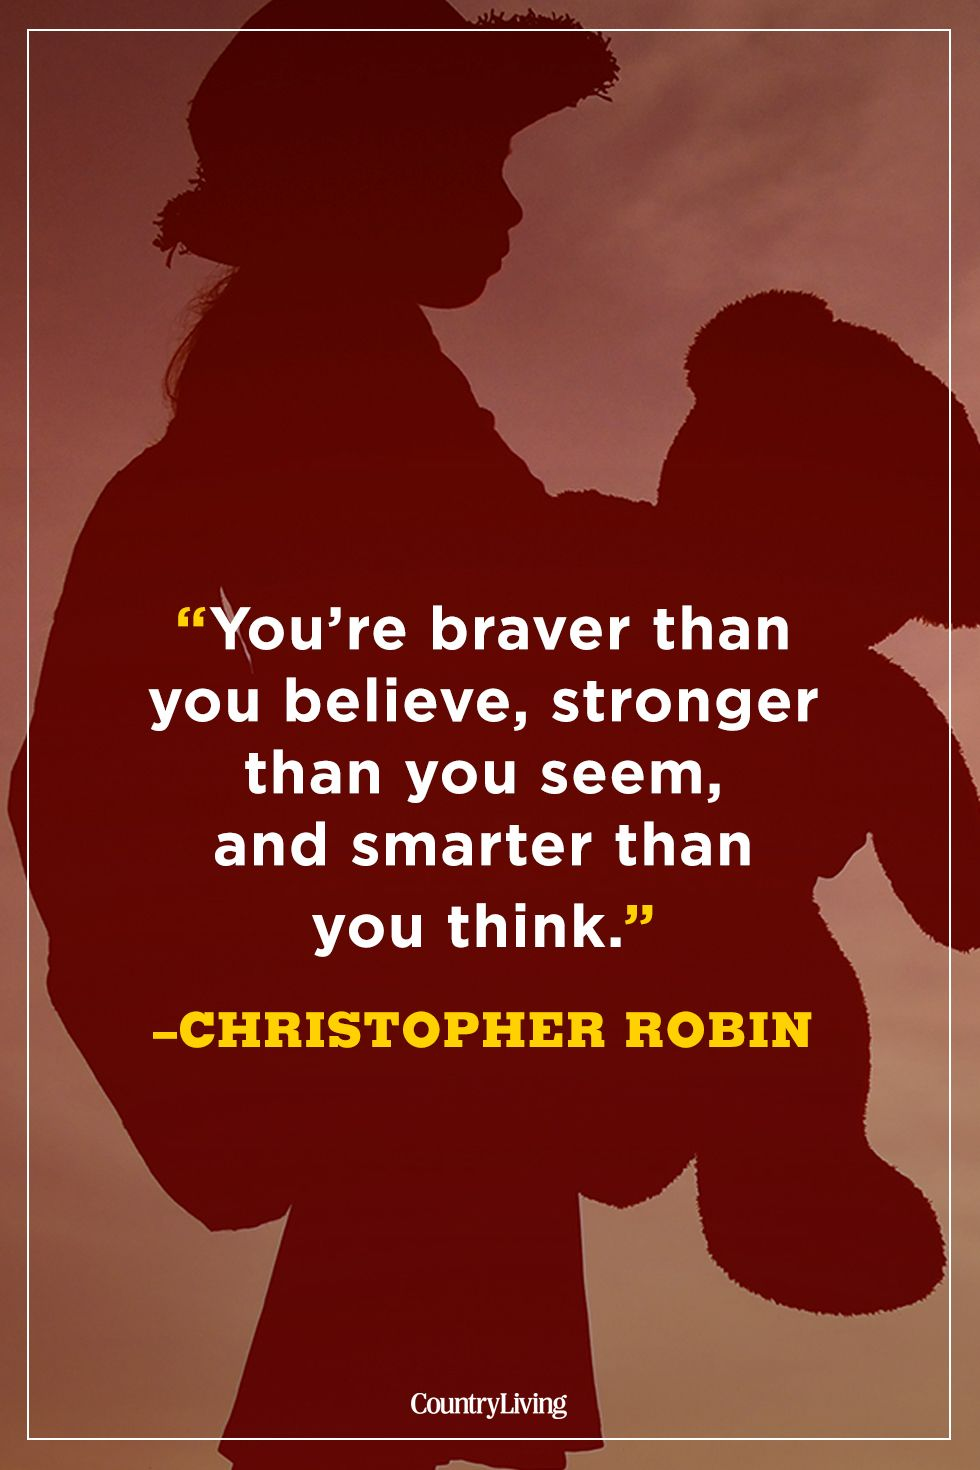 Best Winnie The Pooh Quotes Winnie The Pooh Friendship And Love Quotes